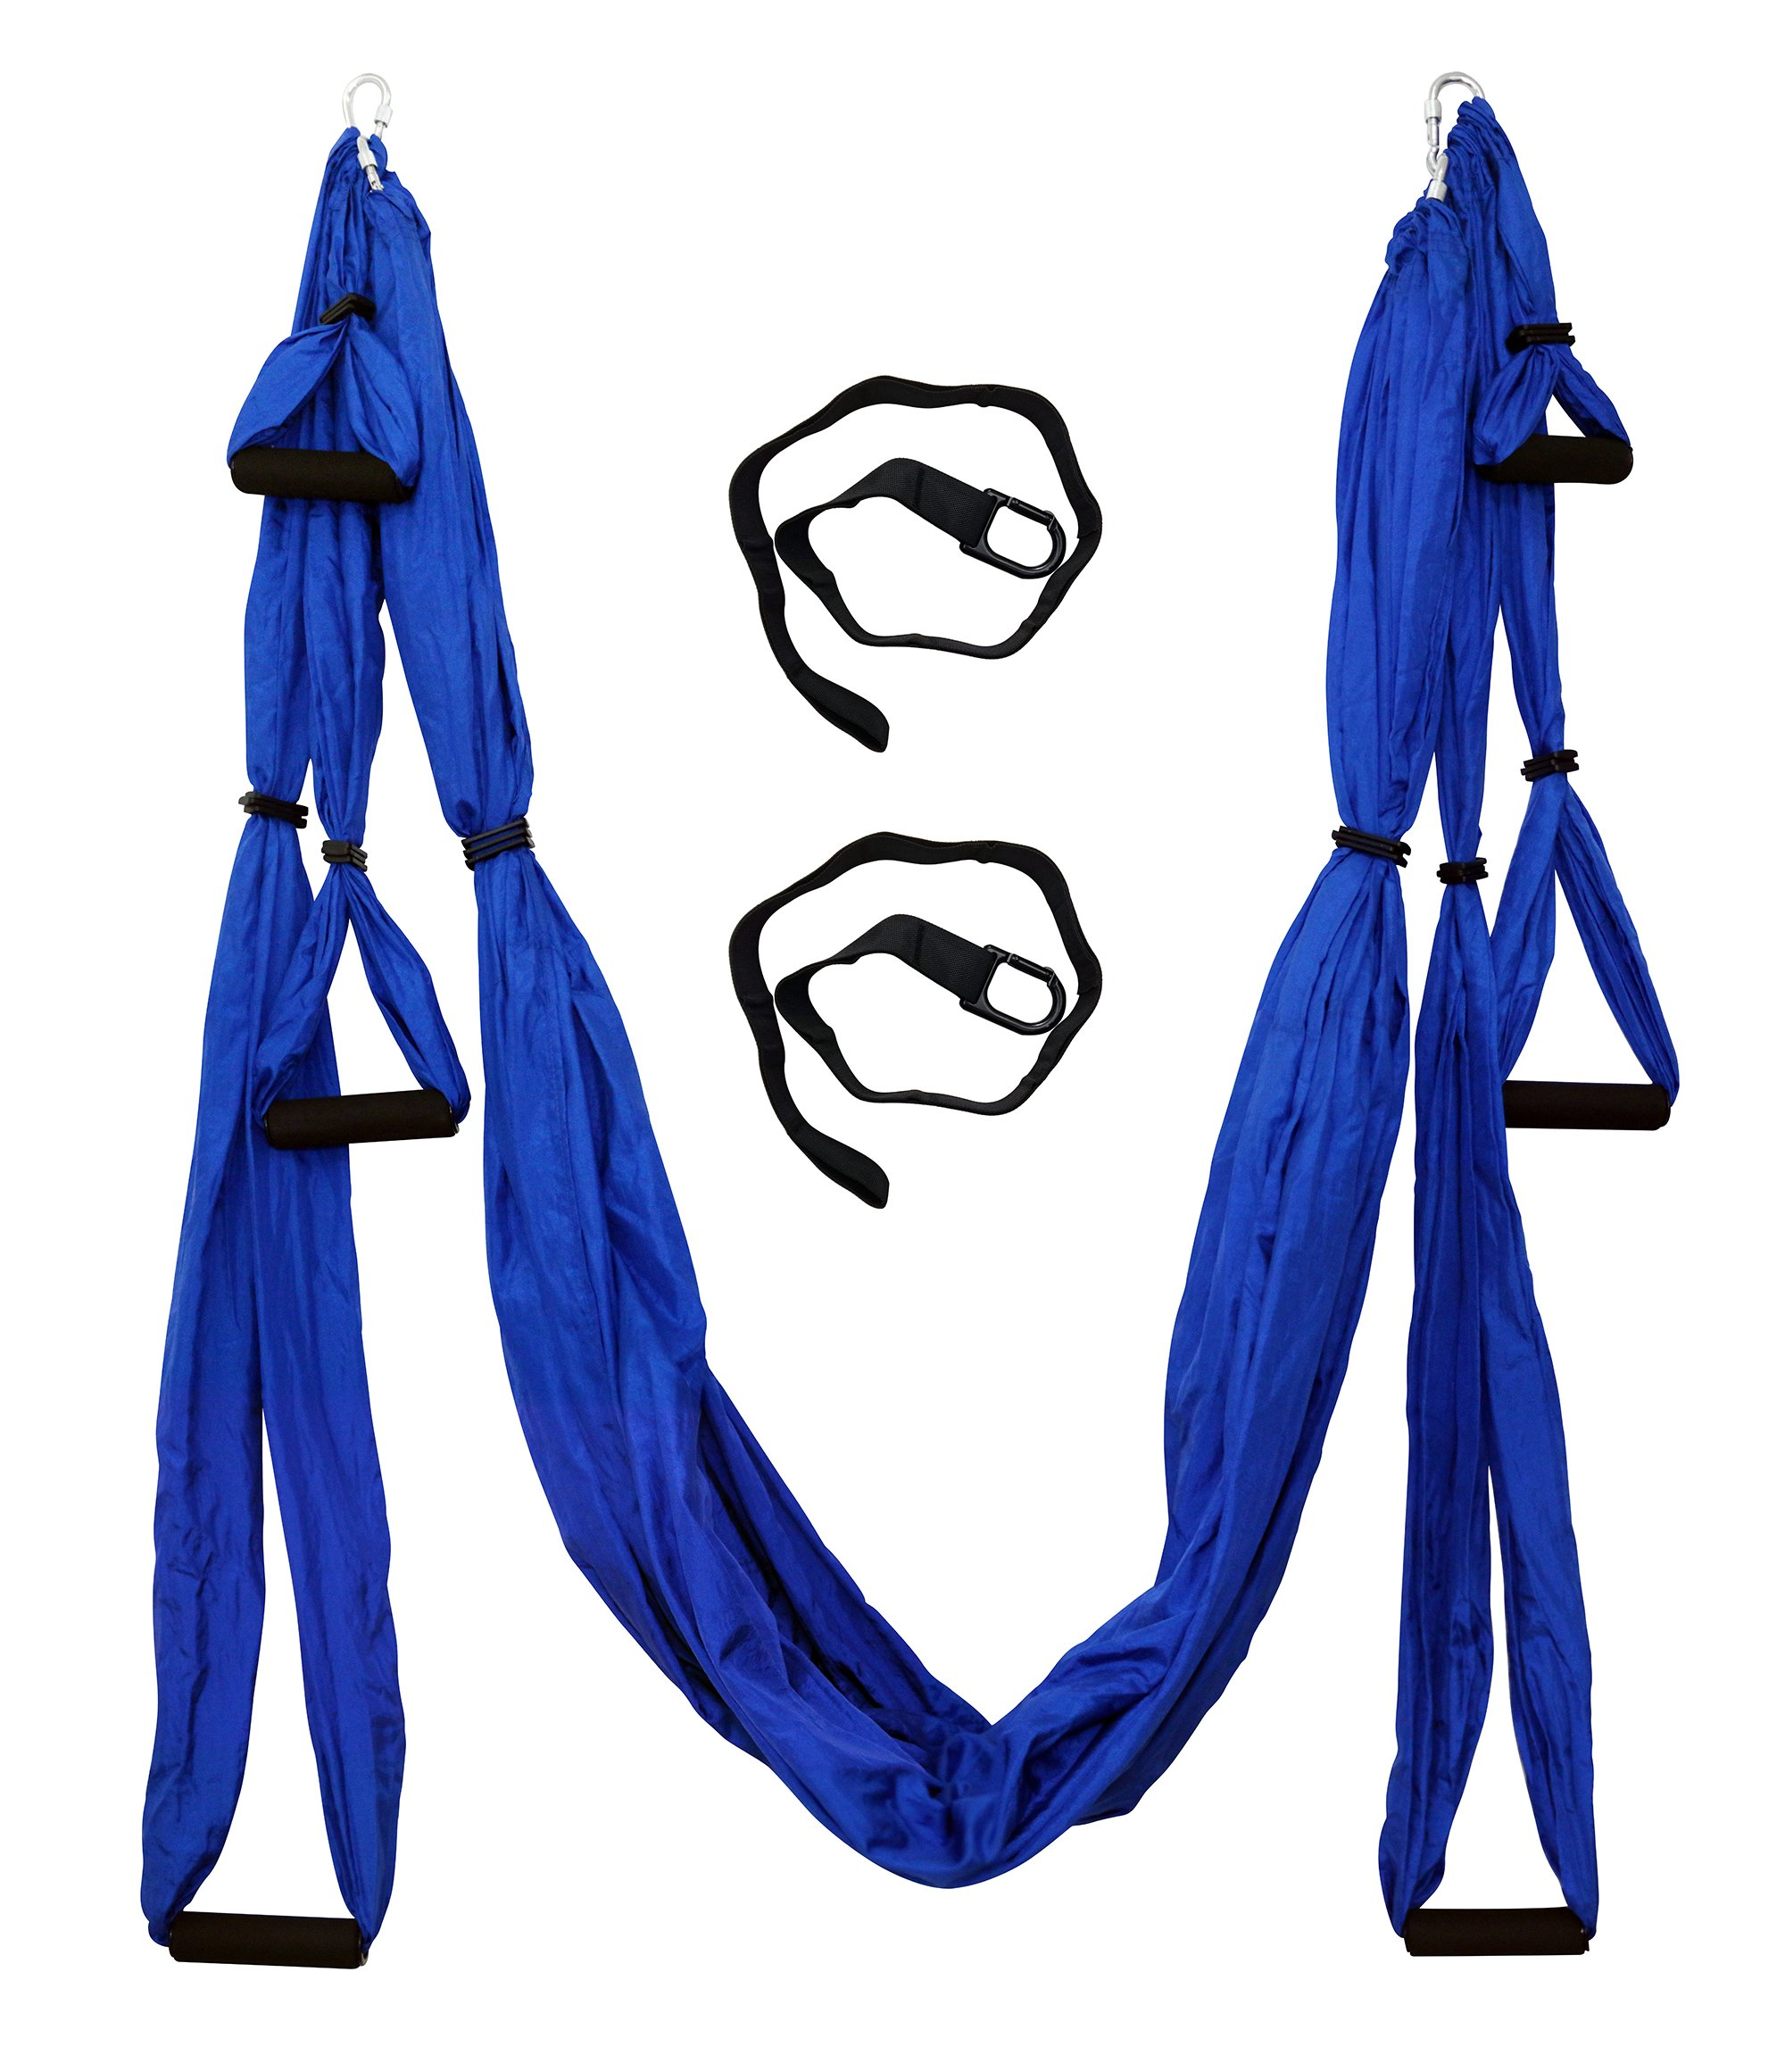 Parachute Fabric Aerial Yoga Swing,Ultra Strong Antigravity Yoga Hammock,Trapeze,Sling for Air Yoga Inversion wih 2 Extensions Straps by SIWA MARY (Image #3)